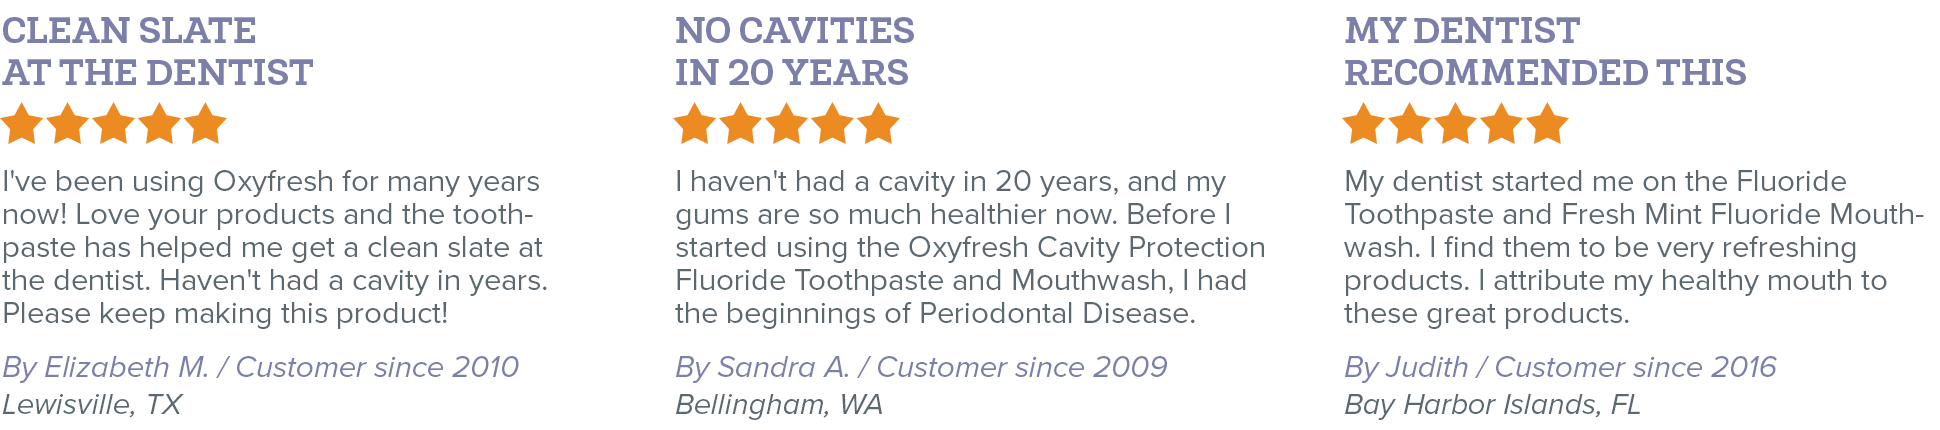 Oxyfresh - Eliminate Bad Breath & Fight Cavities - Low Abrasion Fluoride Toothpaste Reviews